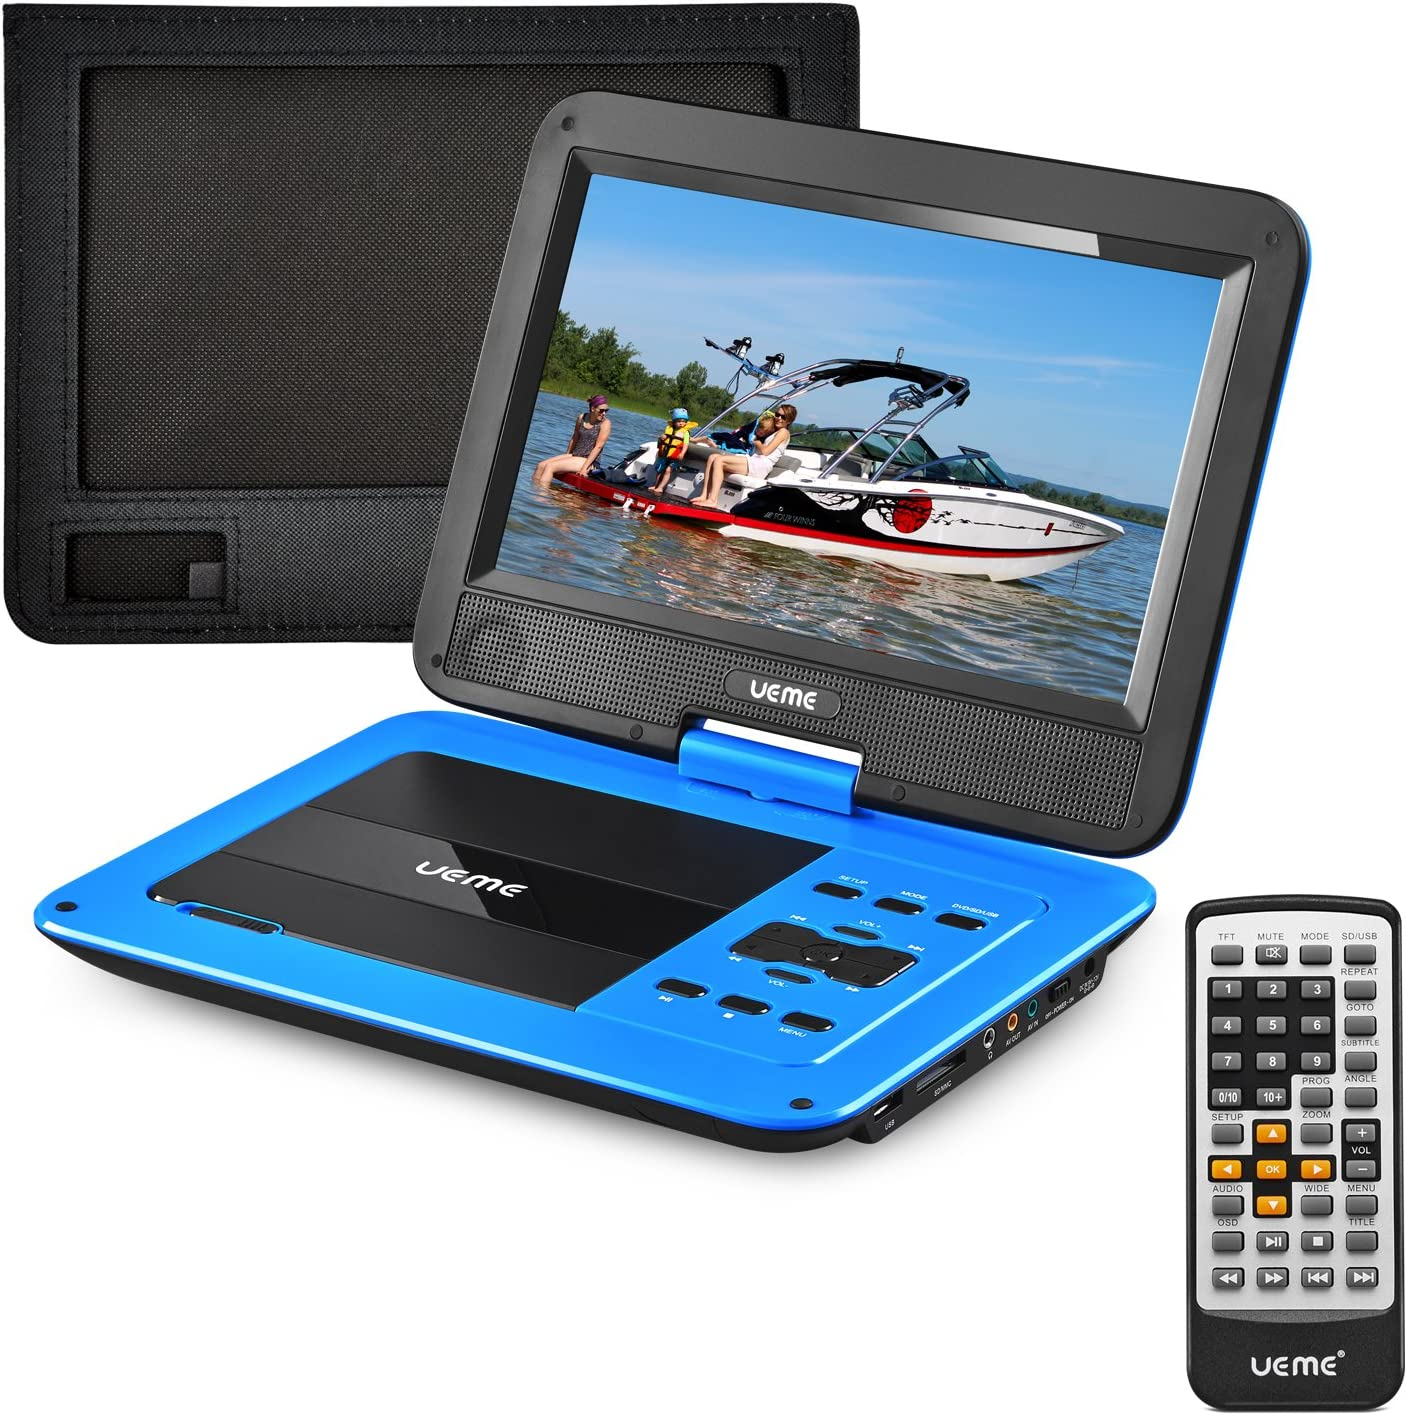 5 Best Portable DVD Players in 2021 [For Cars, Kids, Travel]